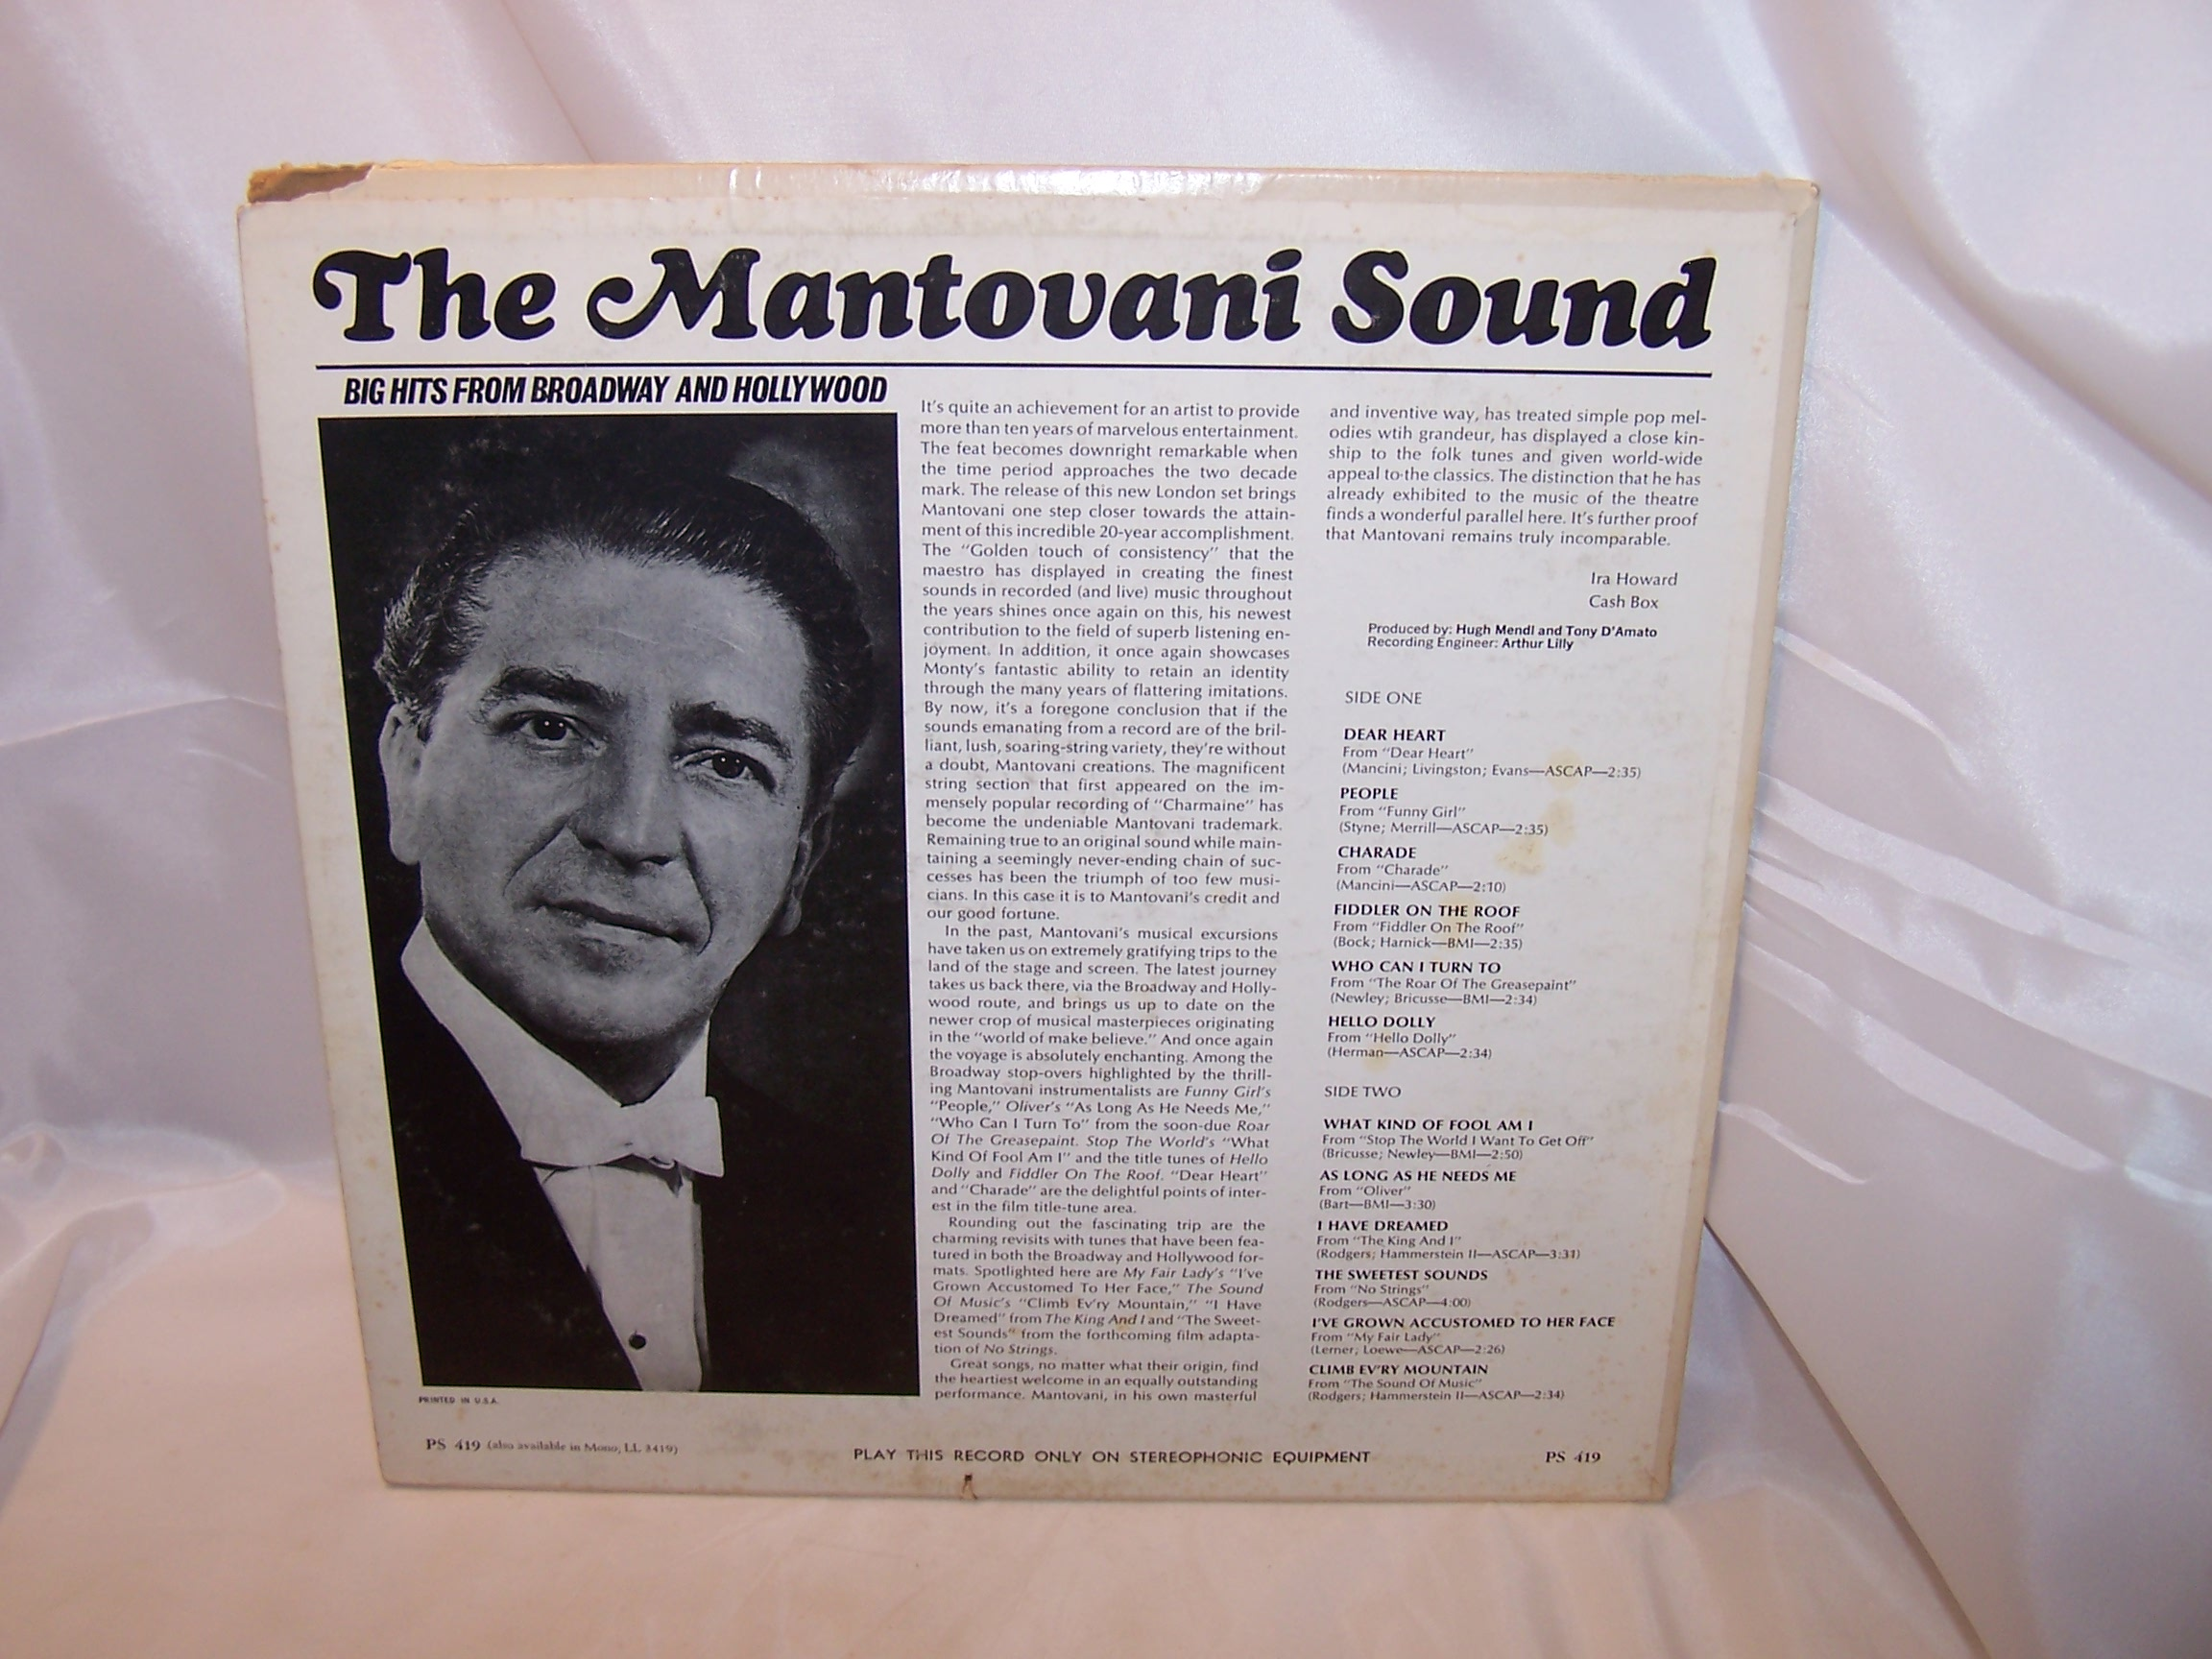 Image 3 of Mantovani Sound, Broadway Hollywood Hits, Record, LP